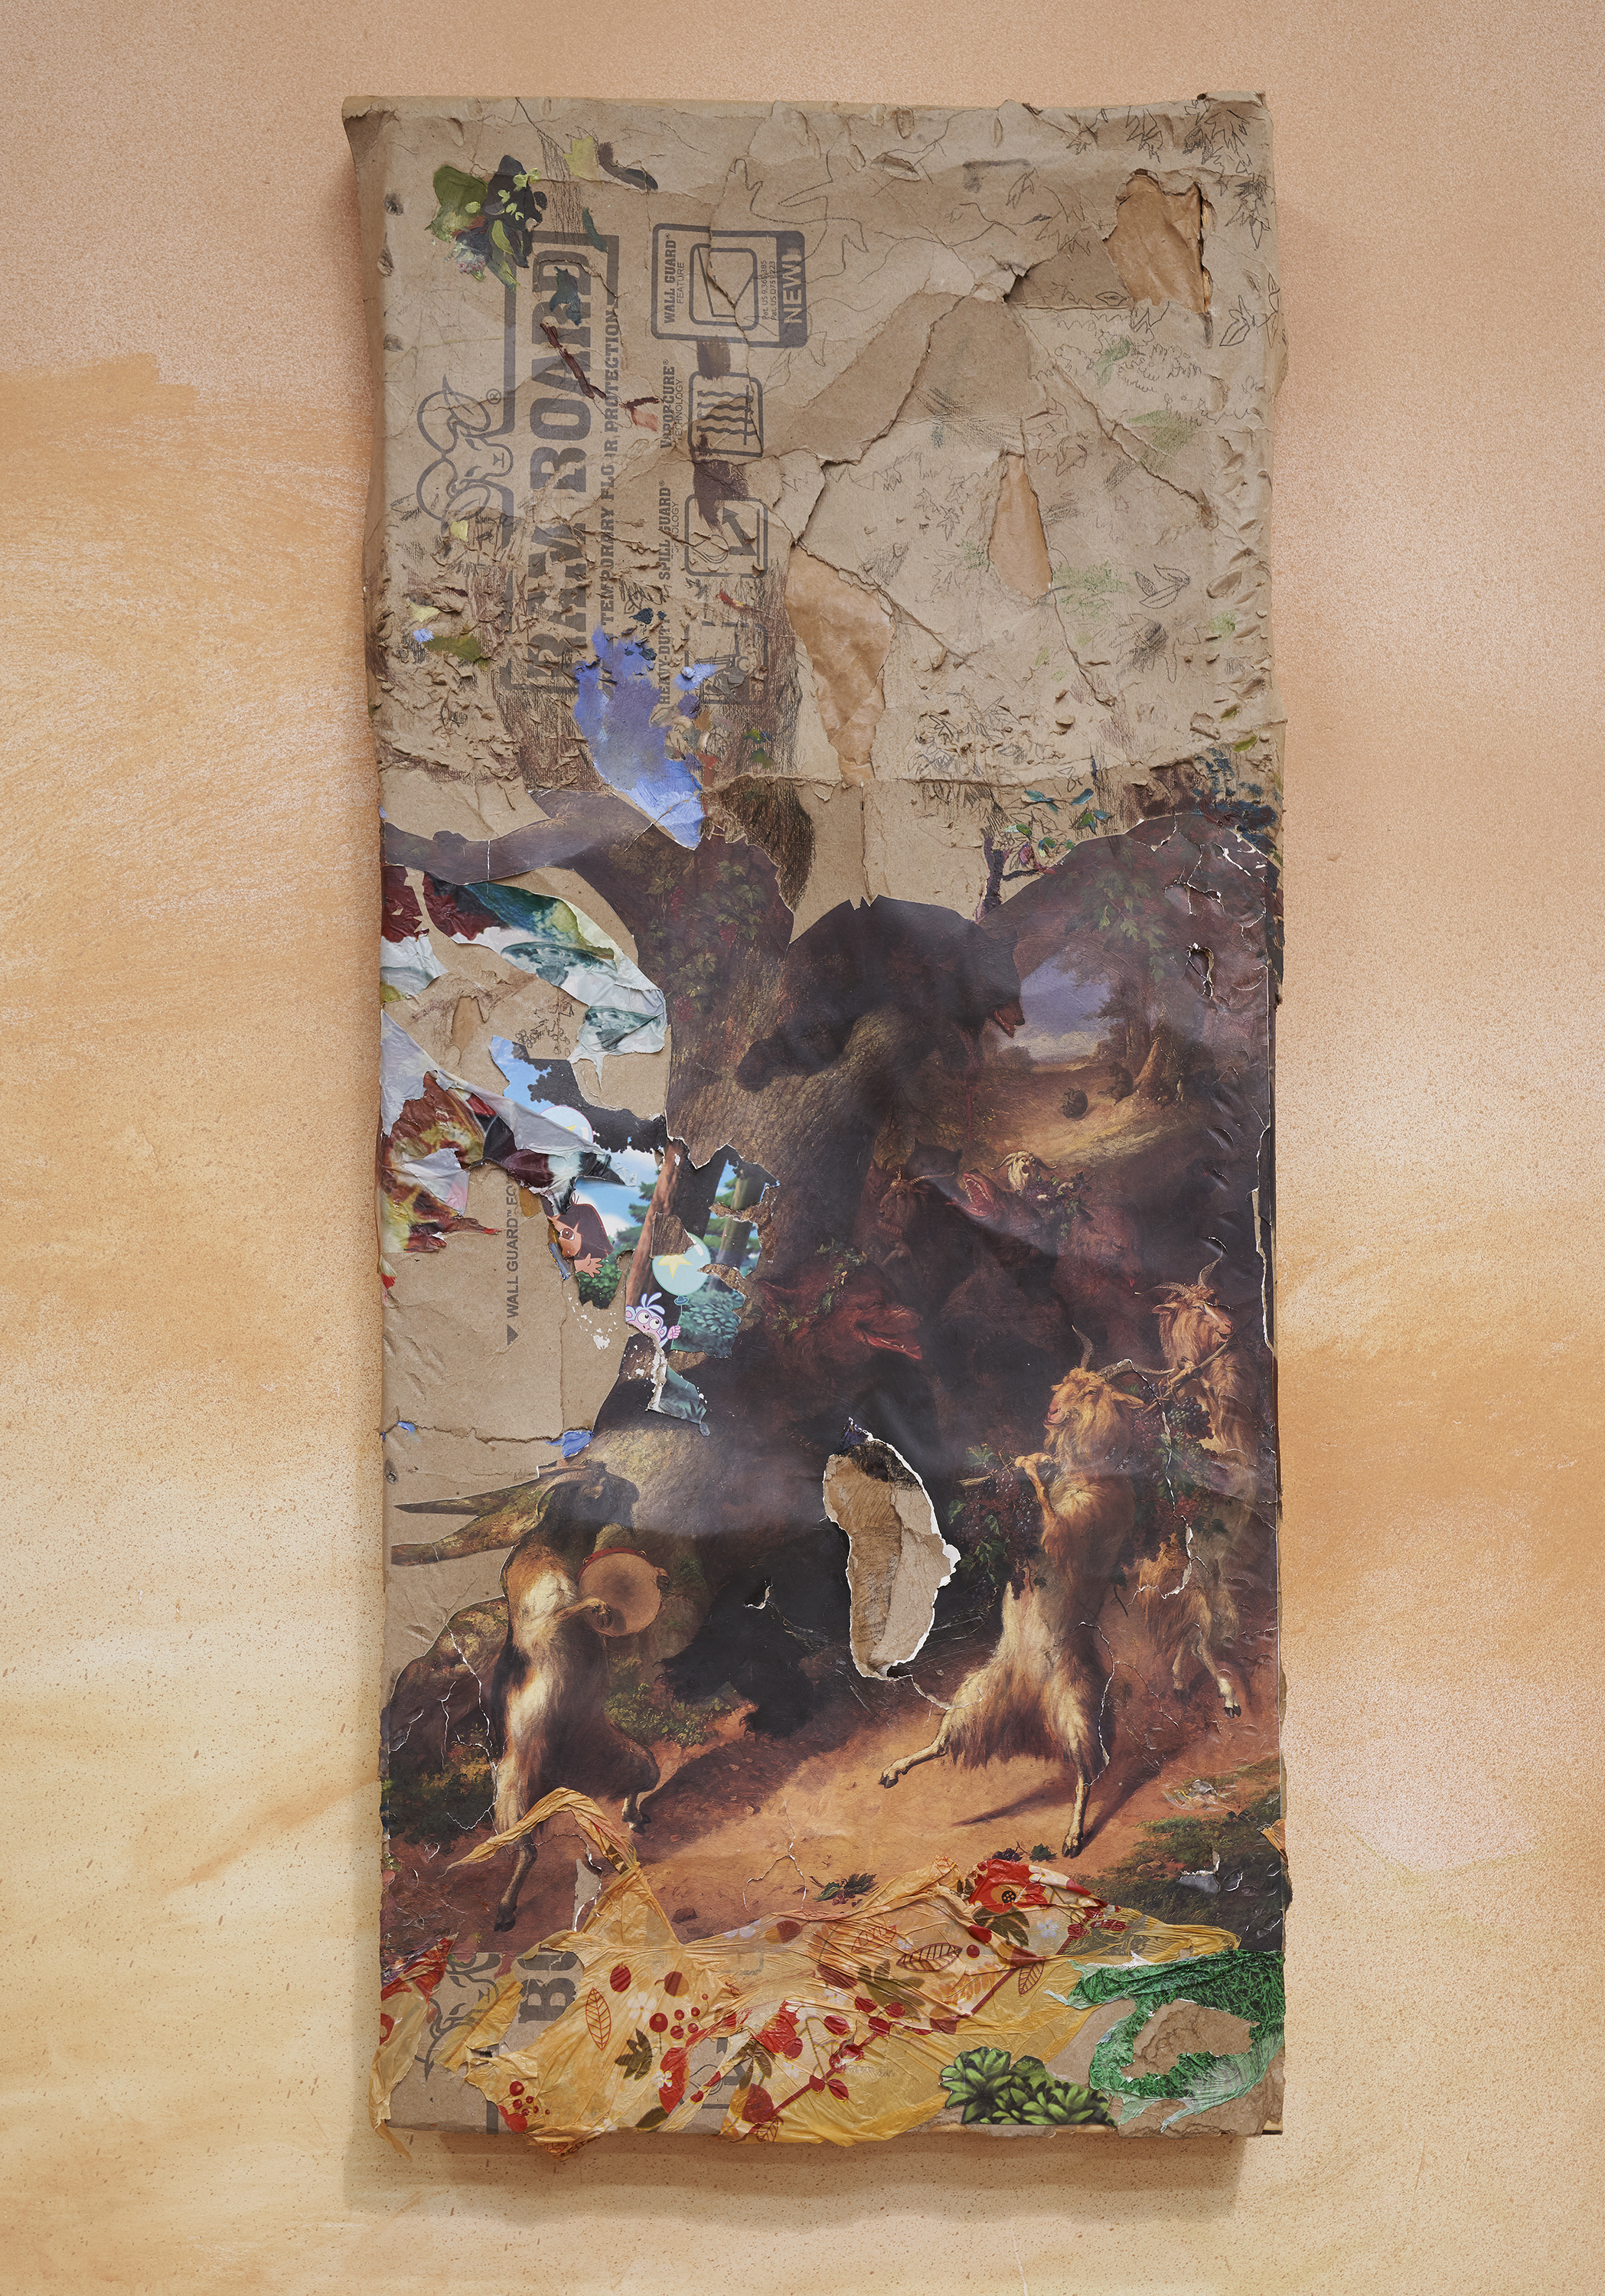 Blows From Boughs , 2018 Ramboard, Dora the Explorer party banner, Thanksgiving tablecloth, Super Bowl tablecloth, William Holbrook Beard's March of Sylinius Gift Shop Poster, oil, and graphite on wood 47 x 21 x 4 inches